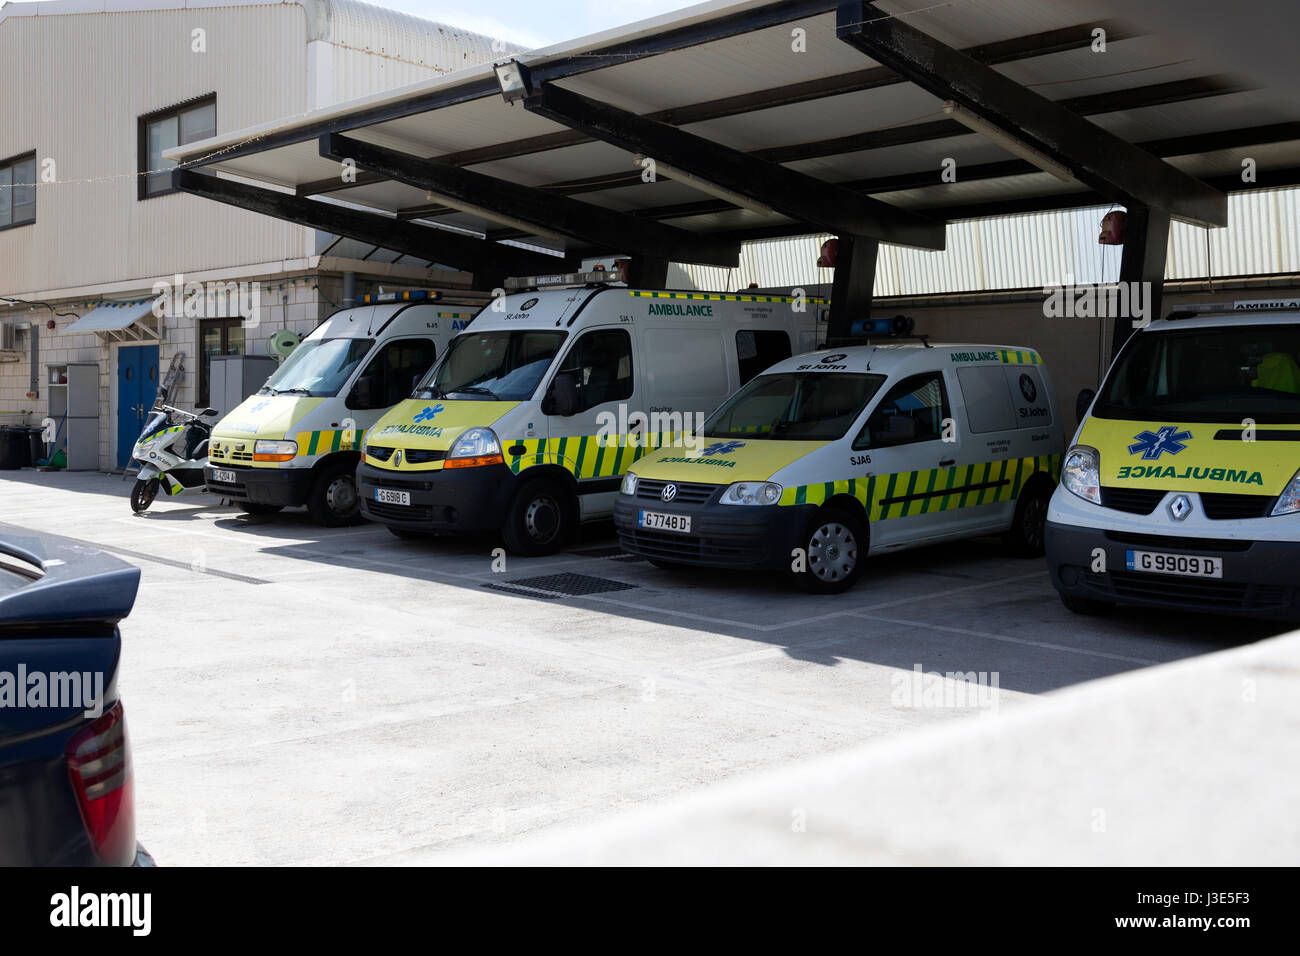 Emergency response vehicles parked at depot in Gibraltar - Stock Image